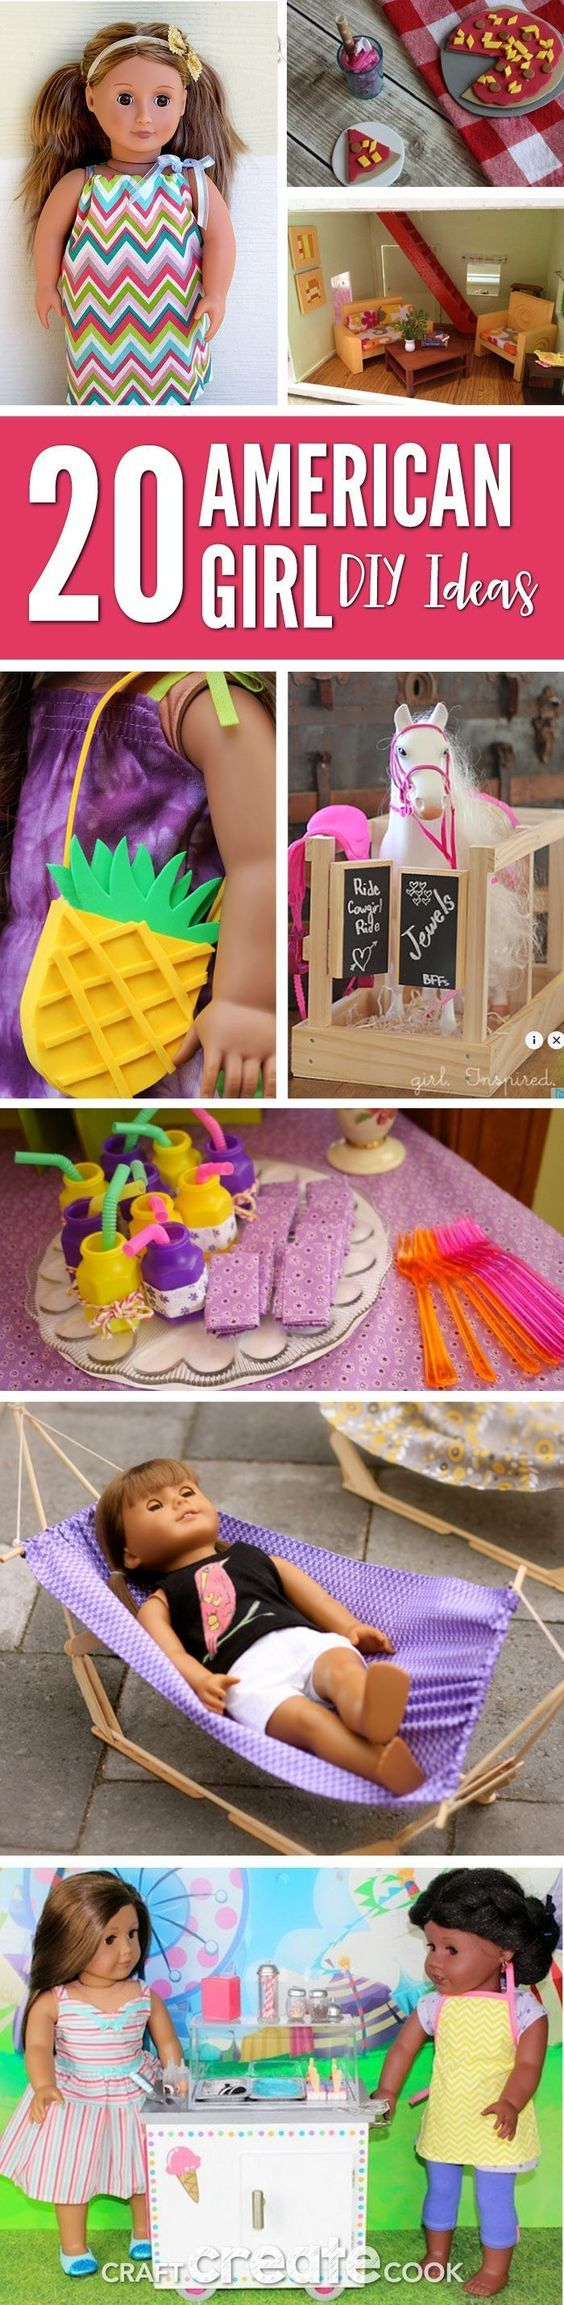 Your American Girl Doll will love these fun and easy DIY ideas! via @CraftCreatCook1